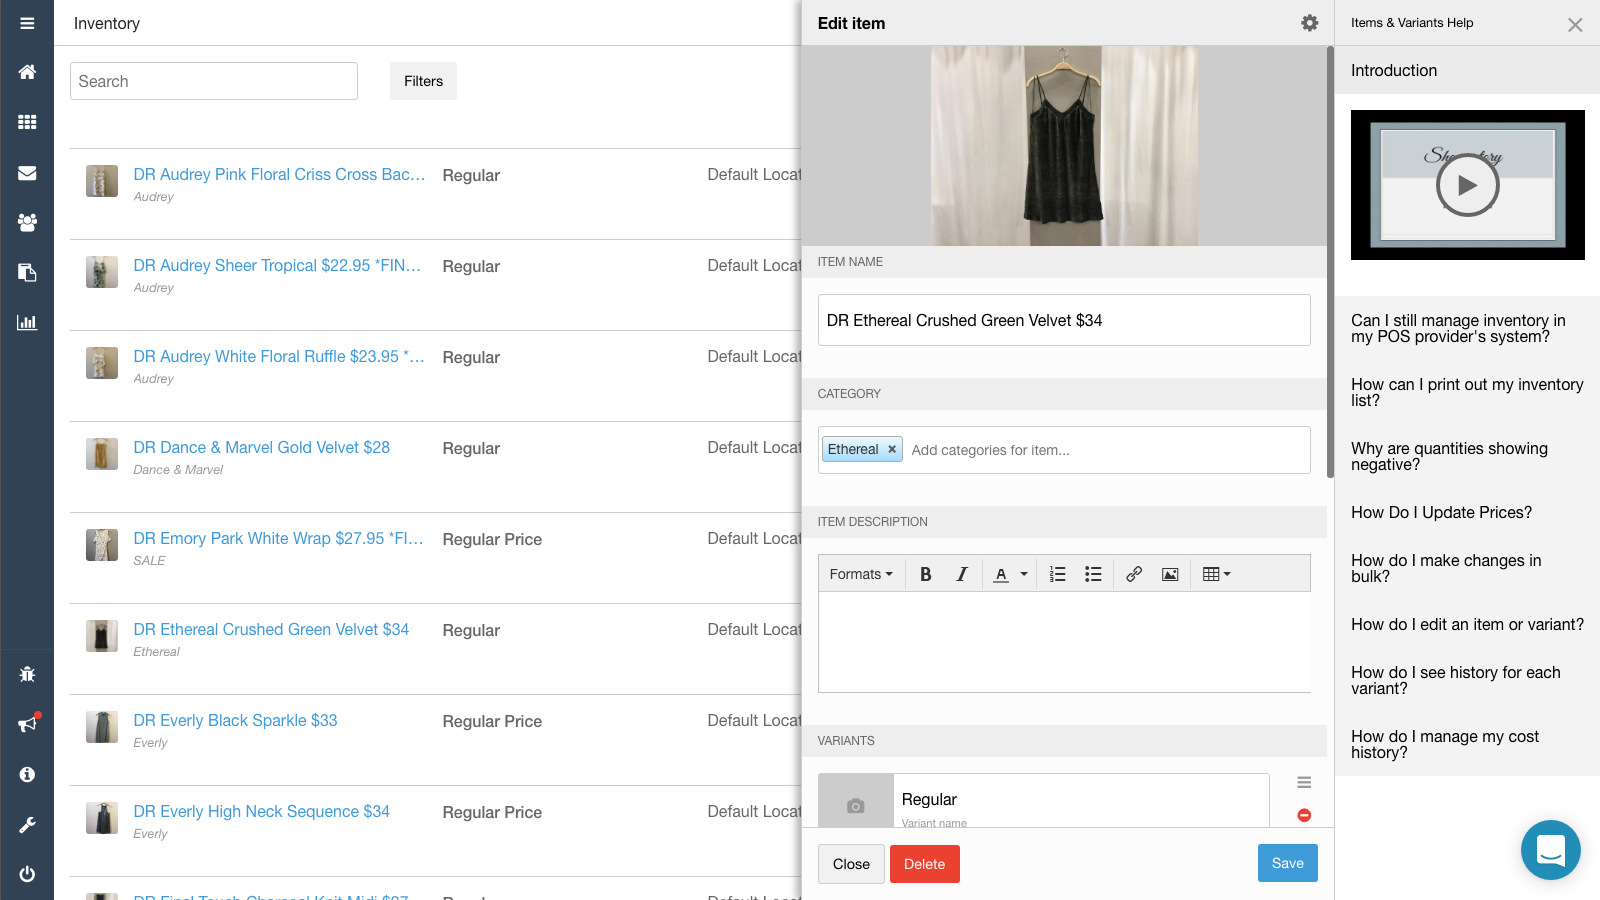 Inventory Management and Optimization